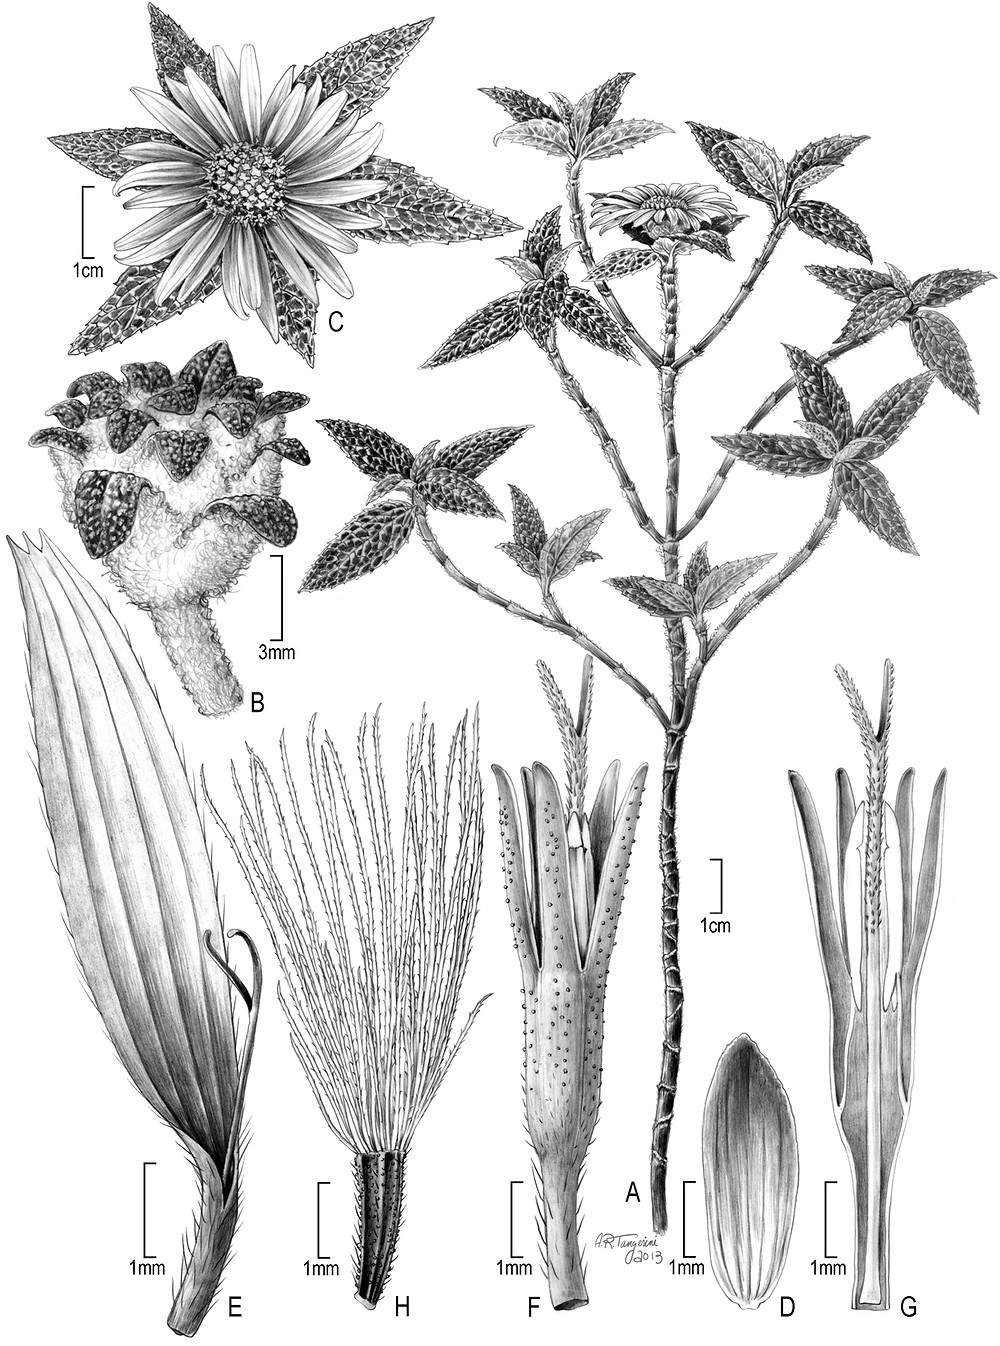 Alice Tangerini, illustration of Bishopanthus soliceps H. Rob.: A) habit; B) head in pre-flowering stage; C) flowering head from above; D) involucral bract; E) ray flower; F) disc flower; G) longitudinal view of disc flower; H) achene with pappus.